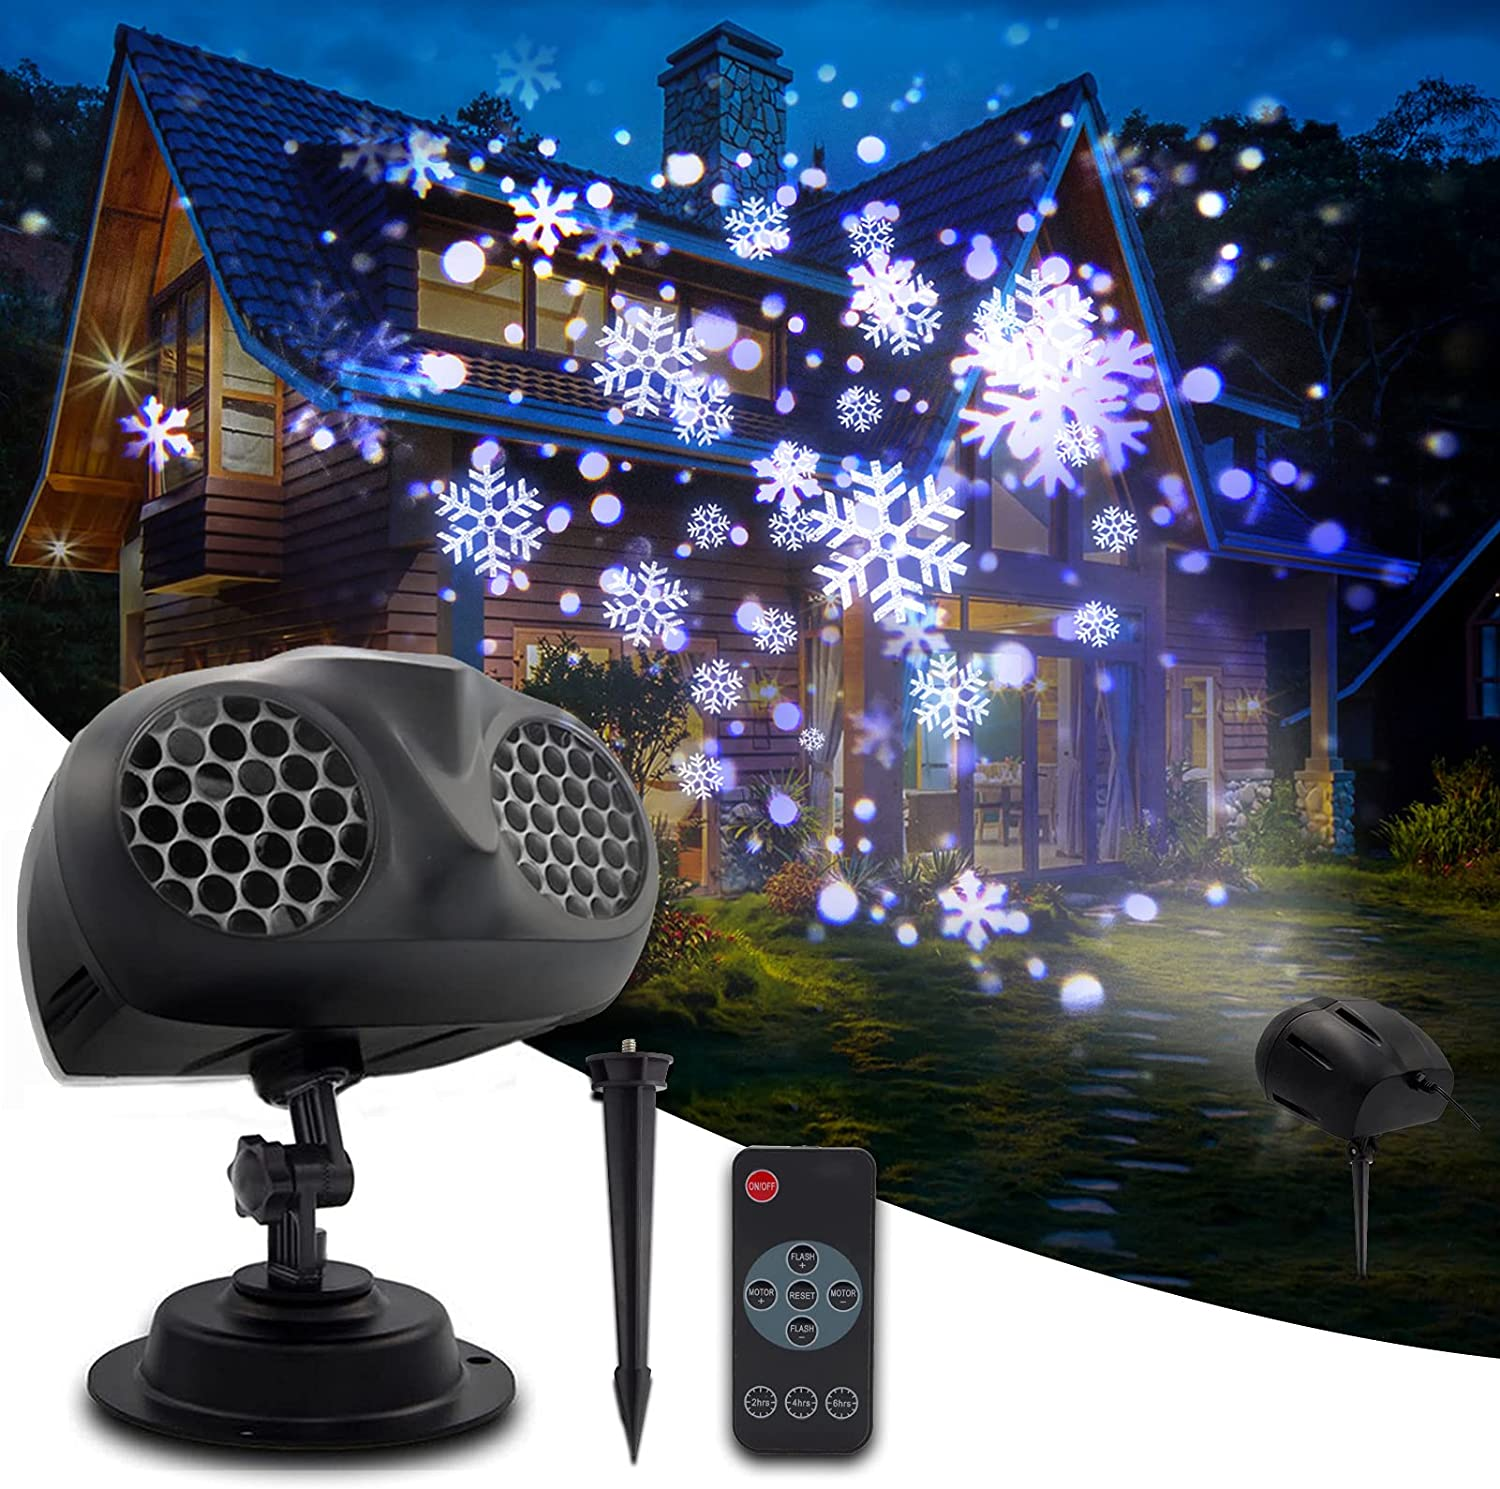 Christmas Fashion Snowflake Projector Lights WEHIGFLY Upgr Outdoor 2021 overseas